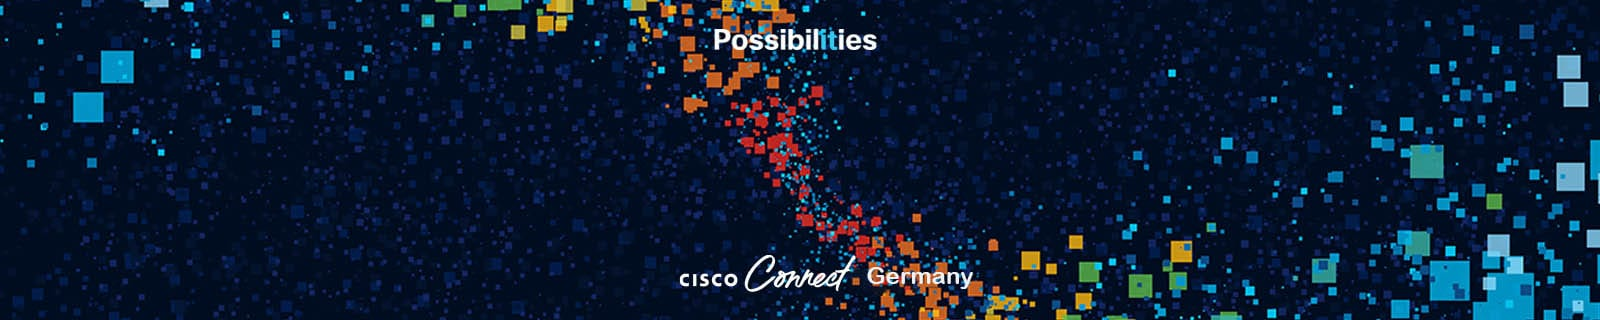 Cisco Connect Germany